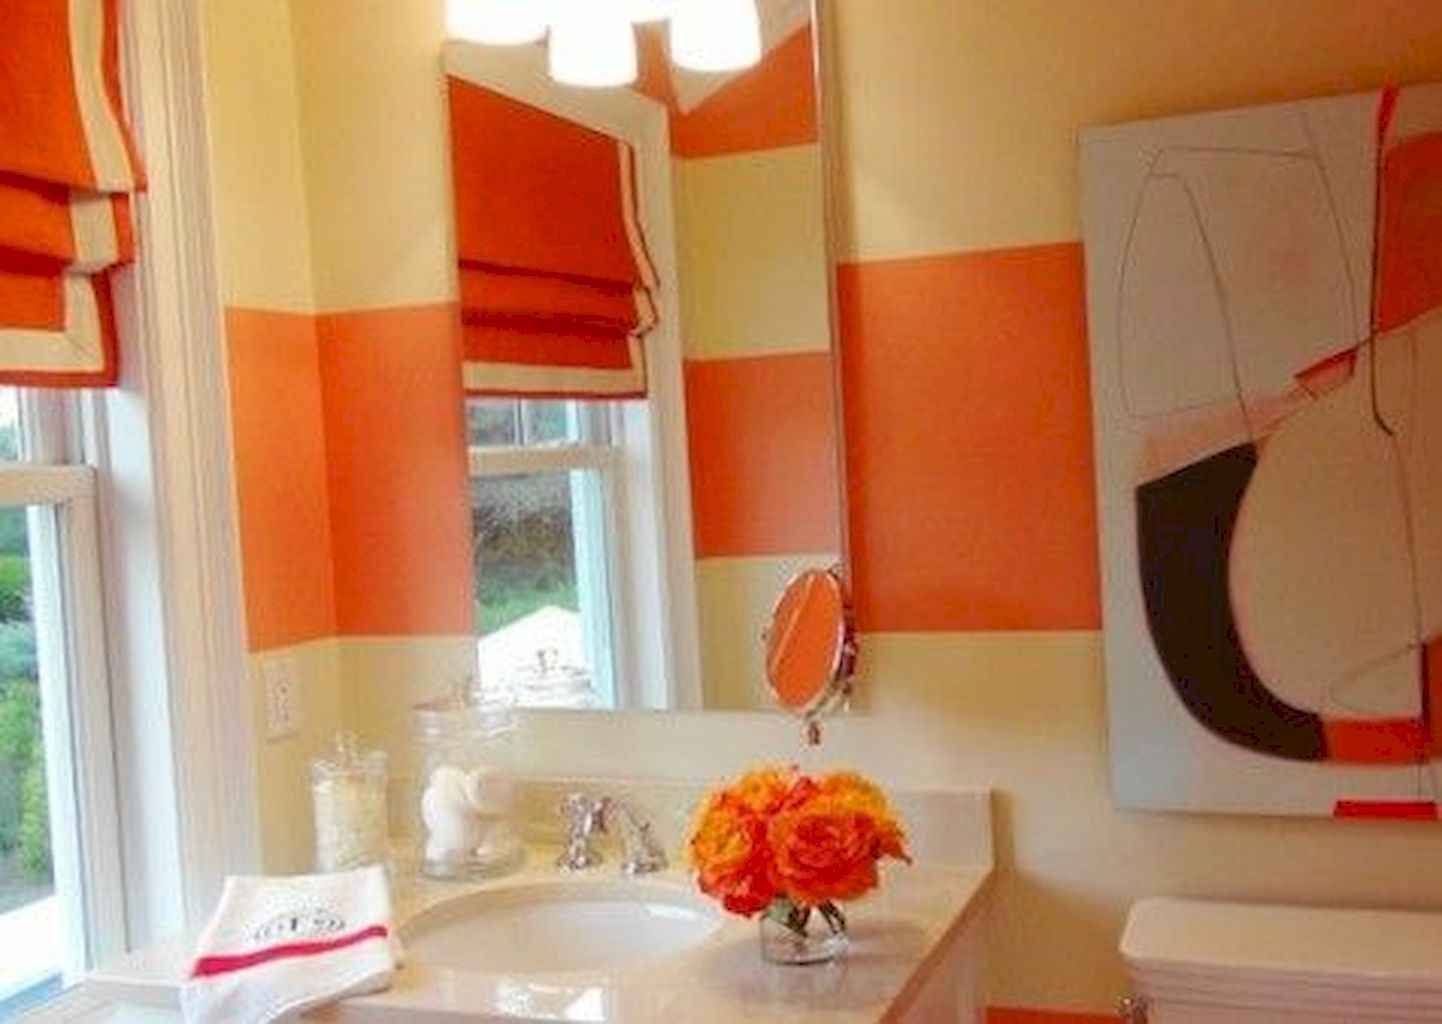 55 cool and relax bathroom design ideas (10)